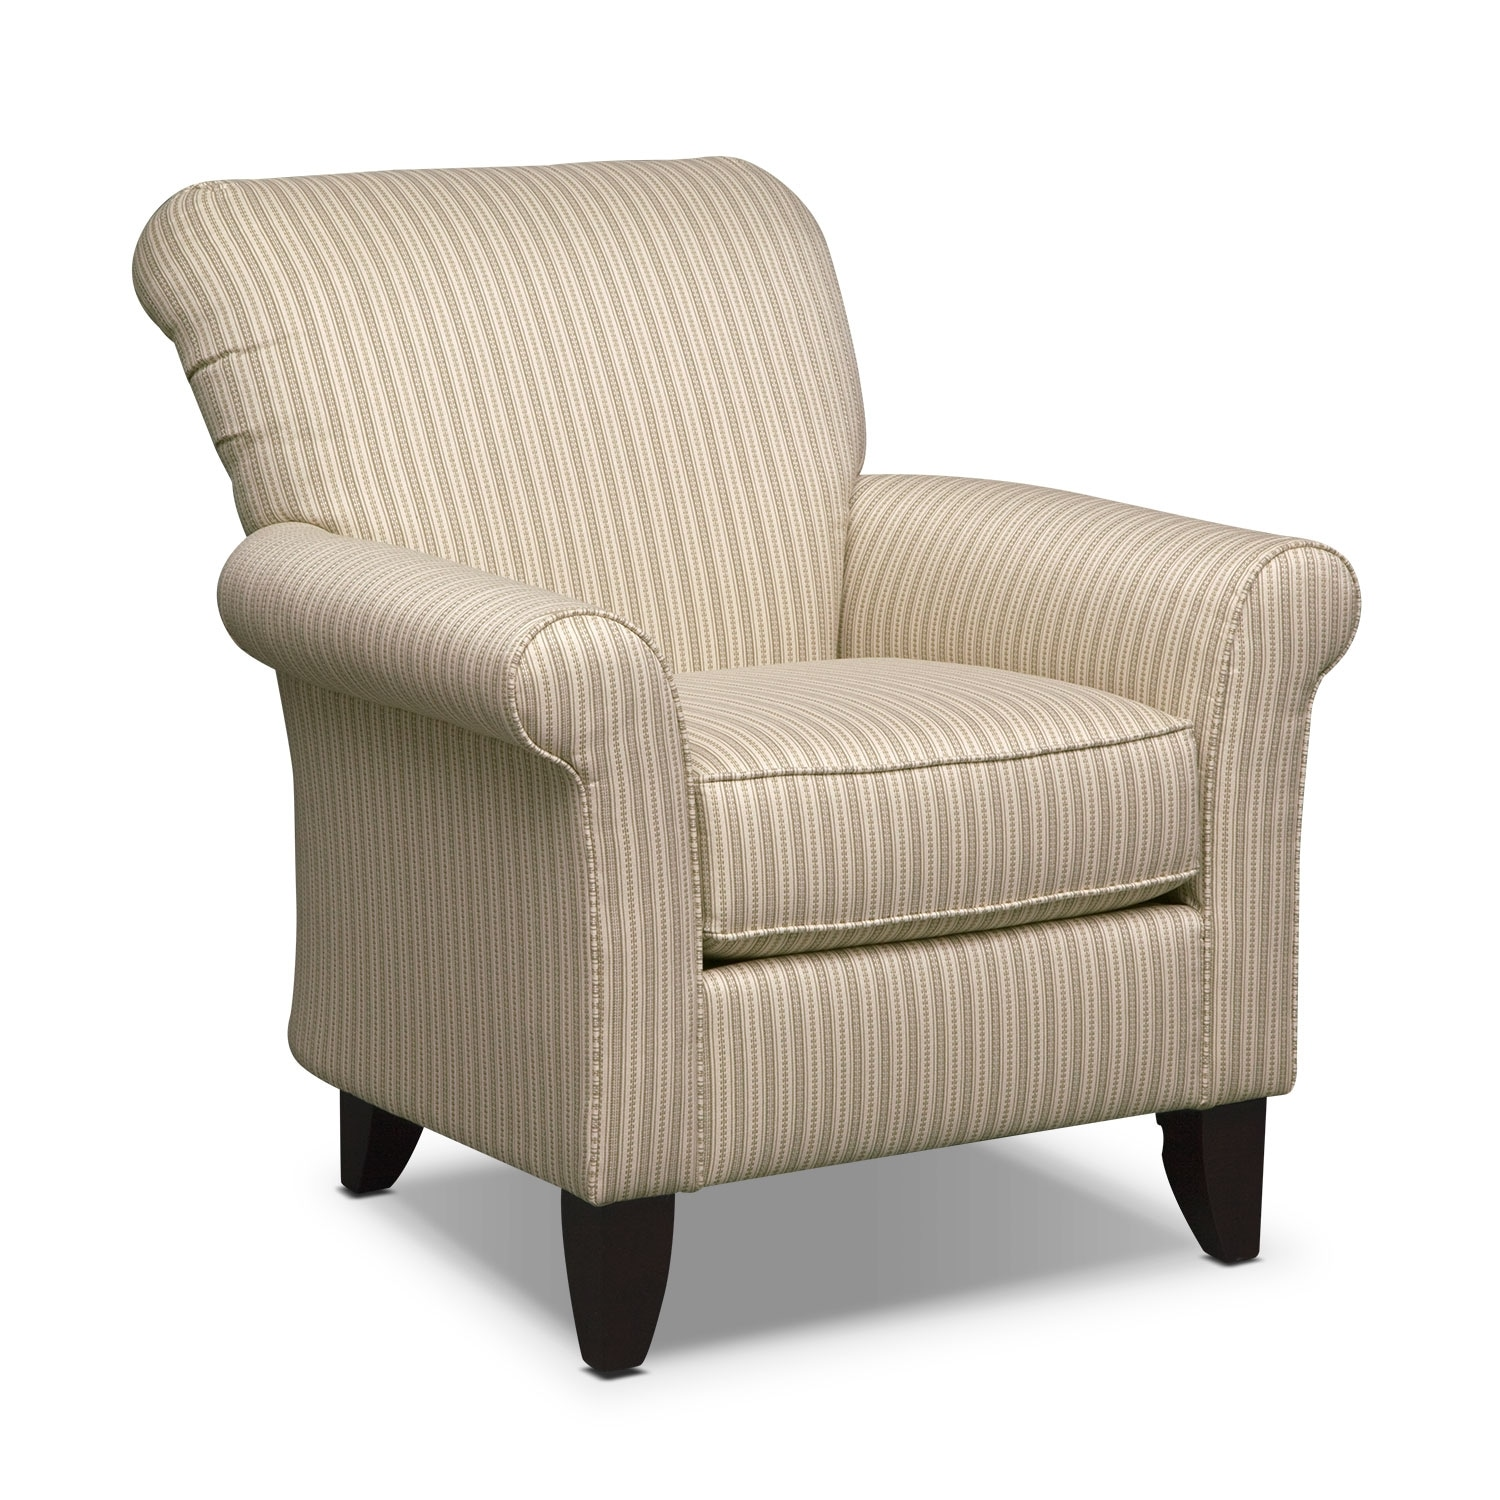 Colette Accent Chair - Khaki